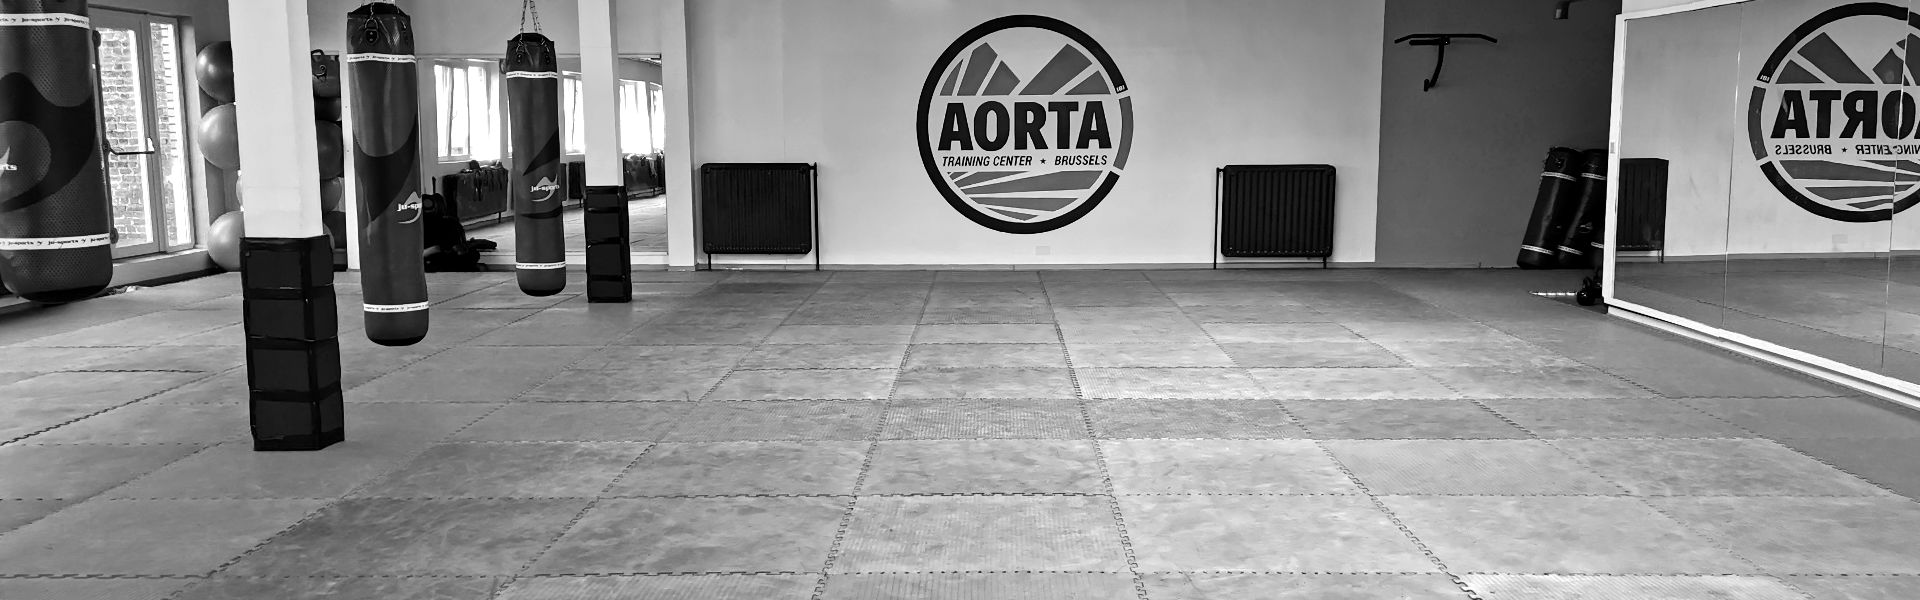 Our place Aorta Training Center